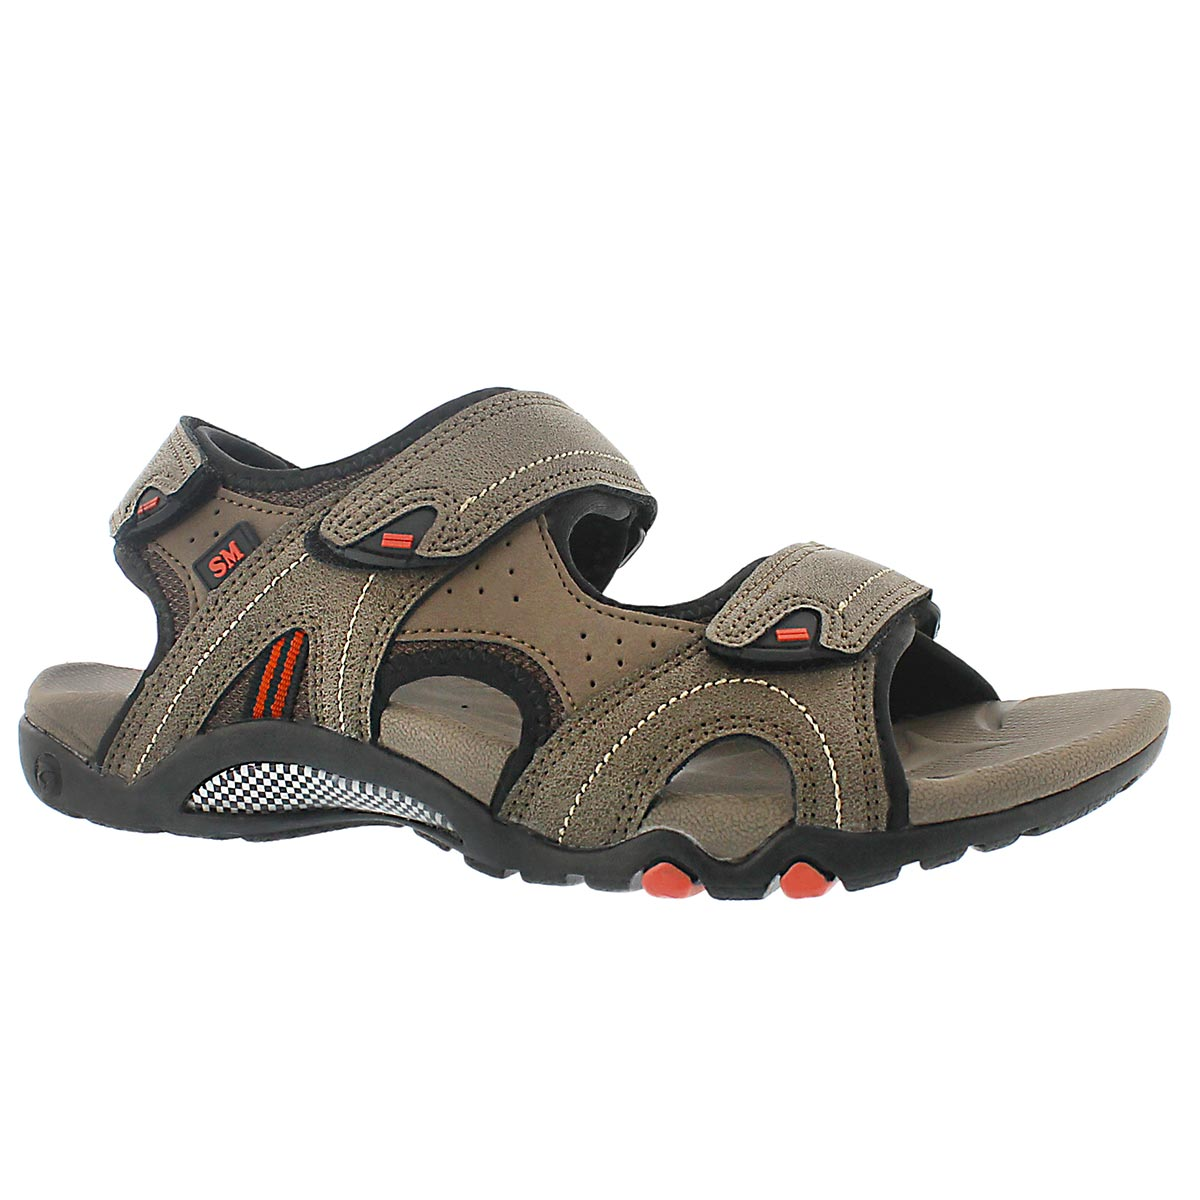 Men's KEEGAN taupe 3 strap sport sandals